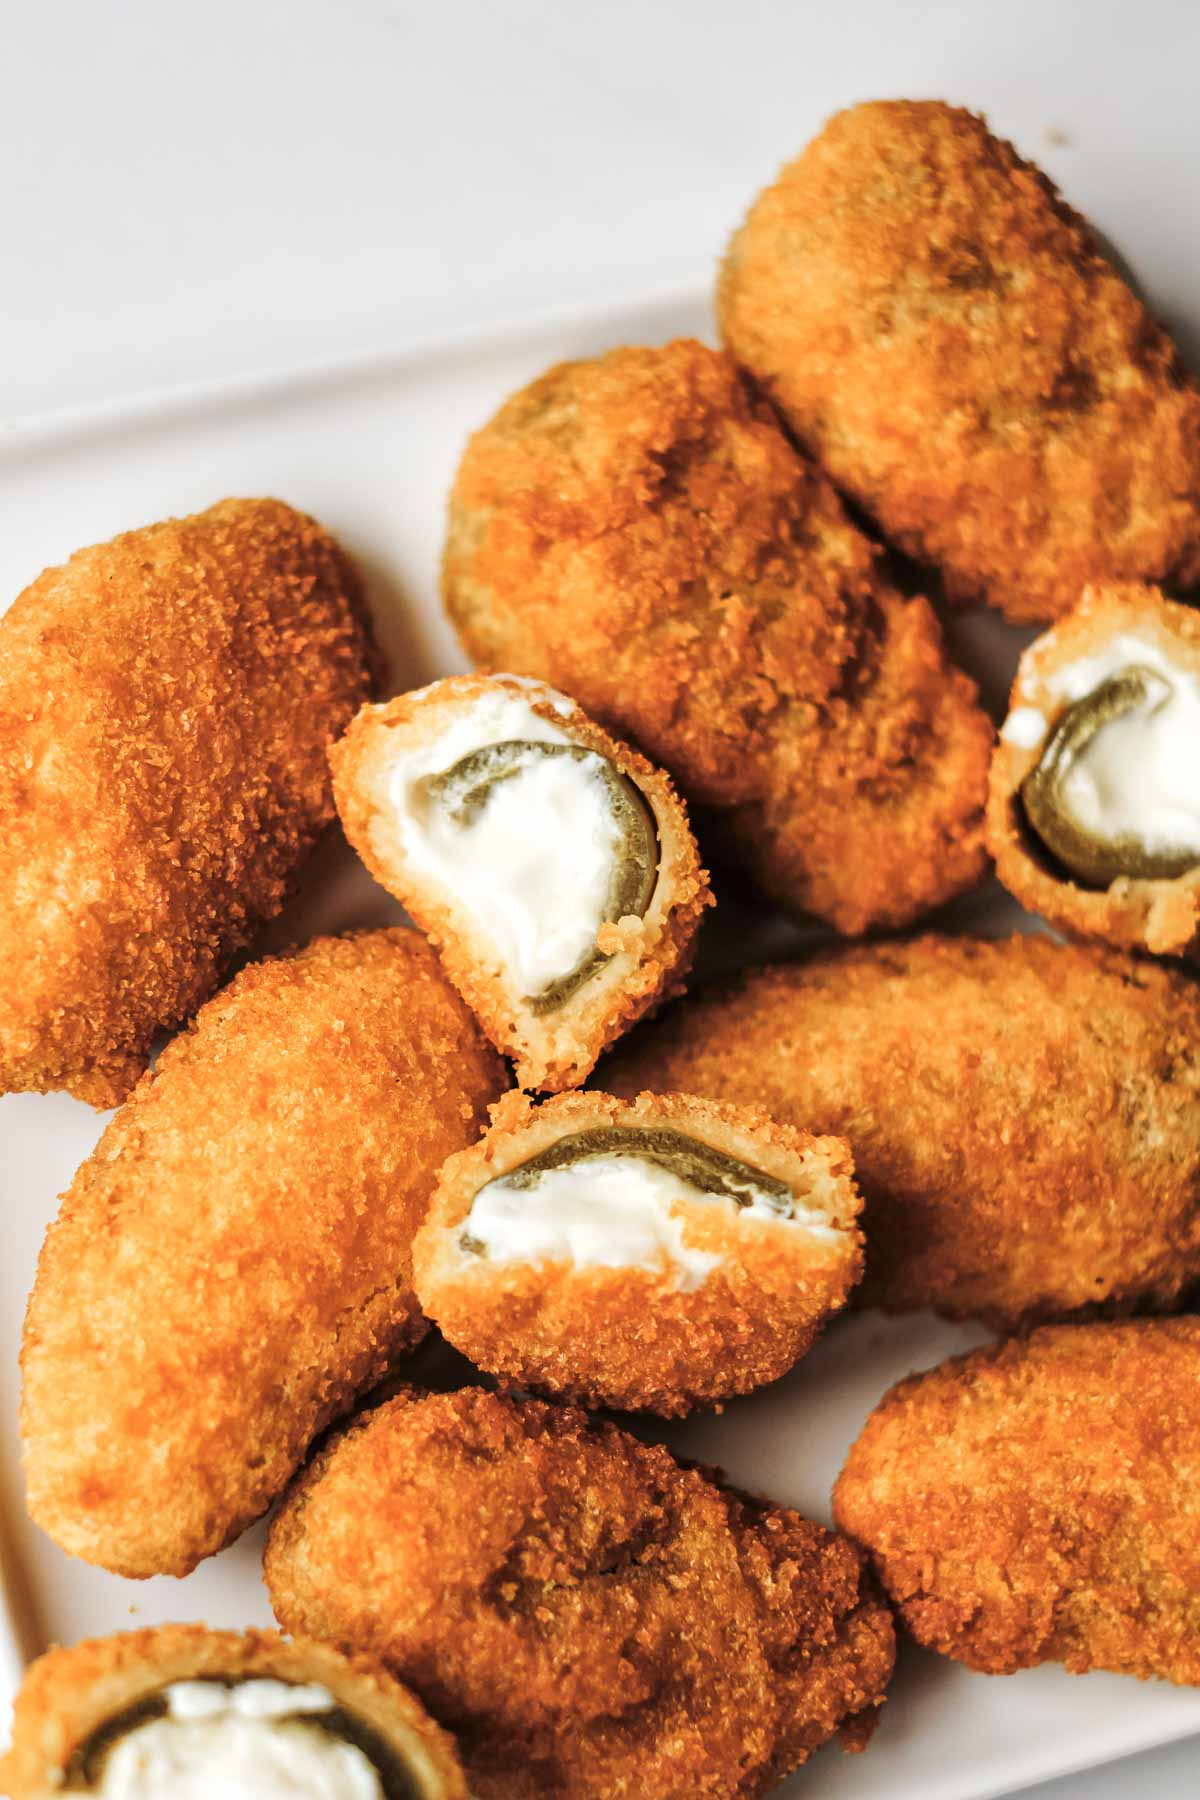 close up view of the finished frozen jalapeno poppers in air fryer